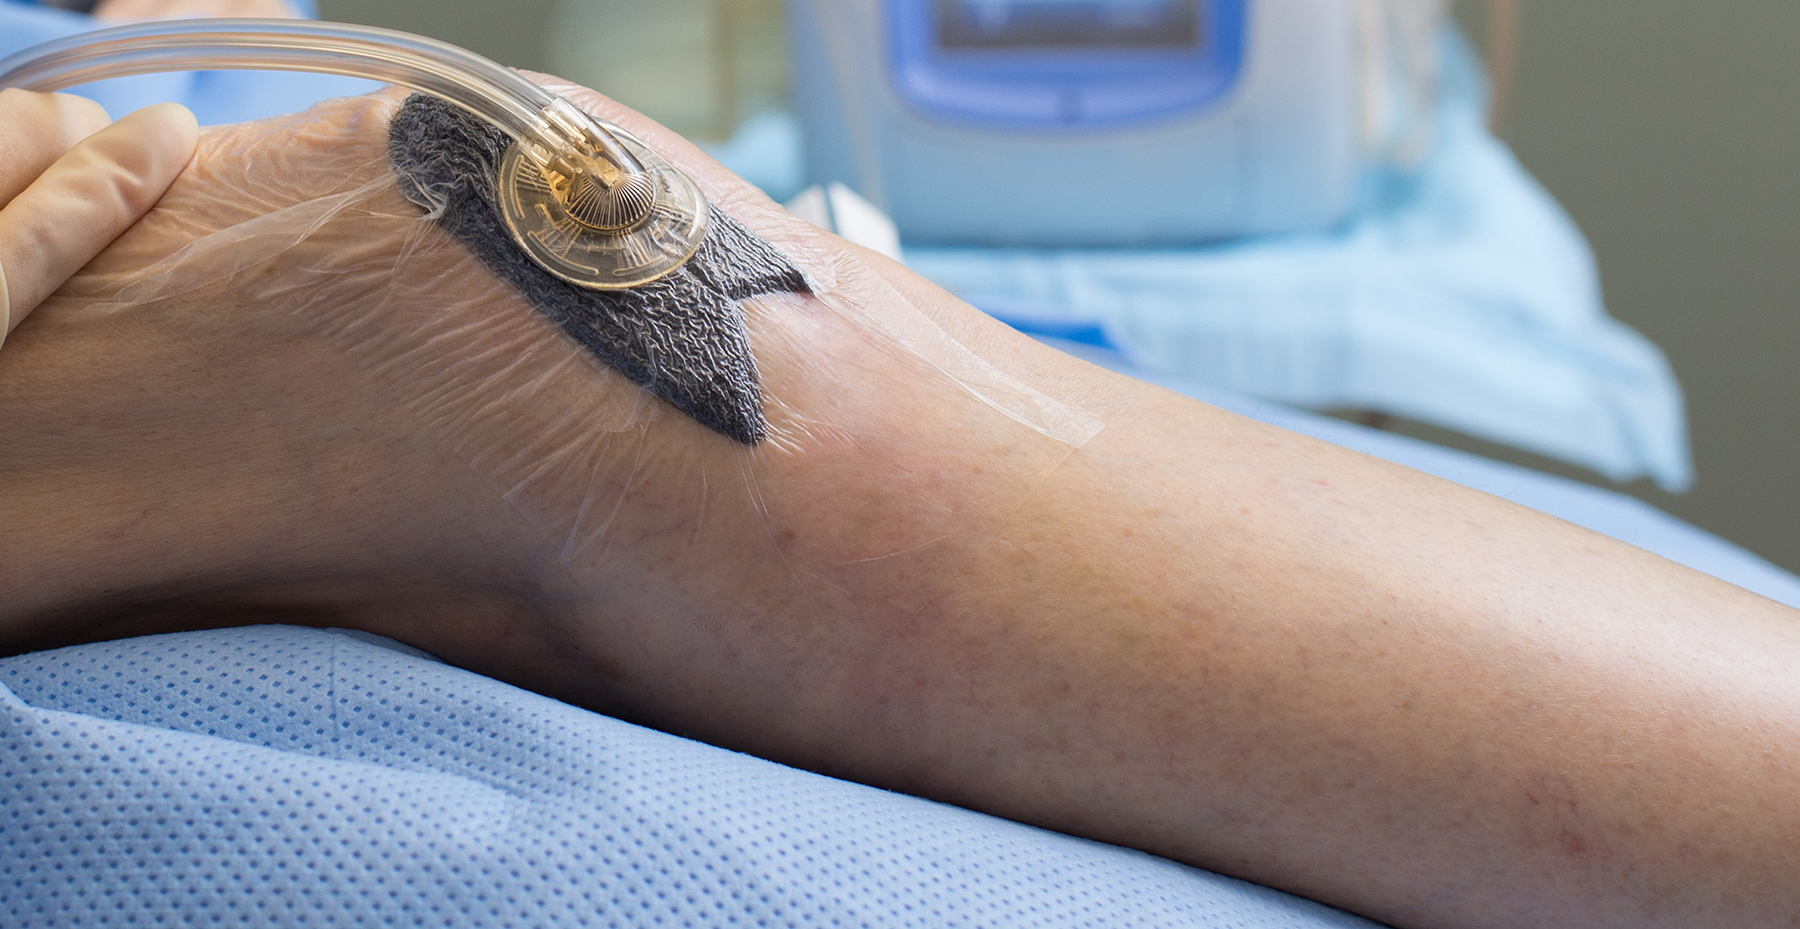 VAC Therapy on patient leg